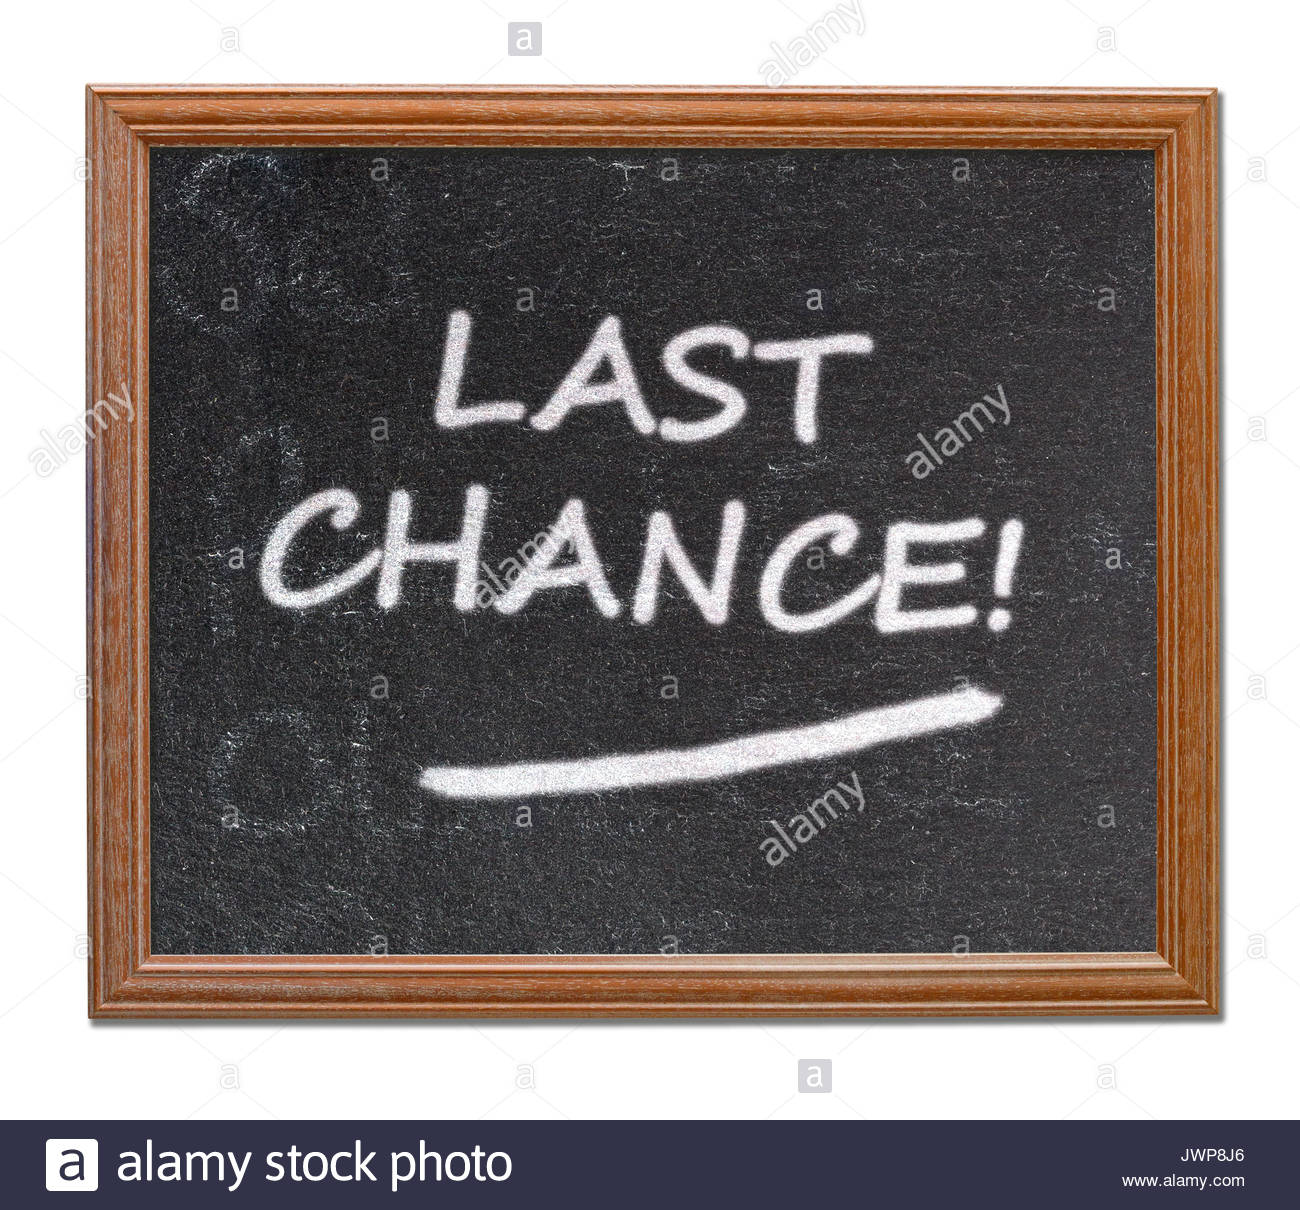 Last chance written on a blackboard, Blandford, Dorset, England, UK - Stock Image